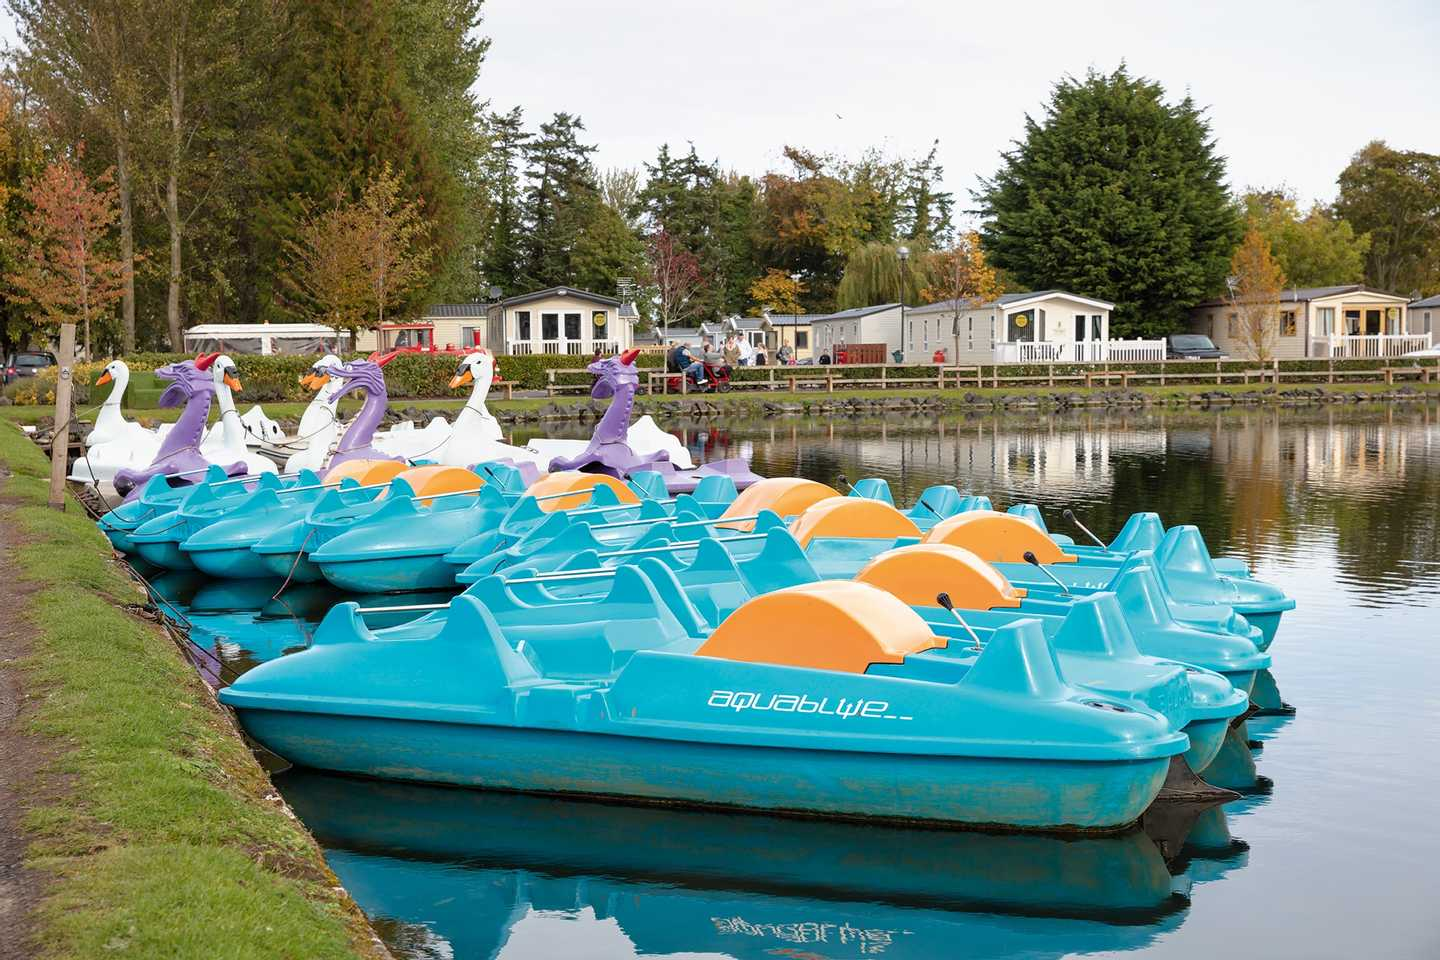 Guests pedalling a swan pedalo on the boating lake